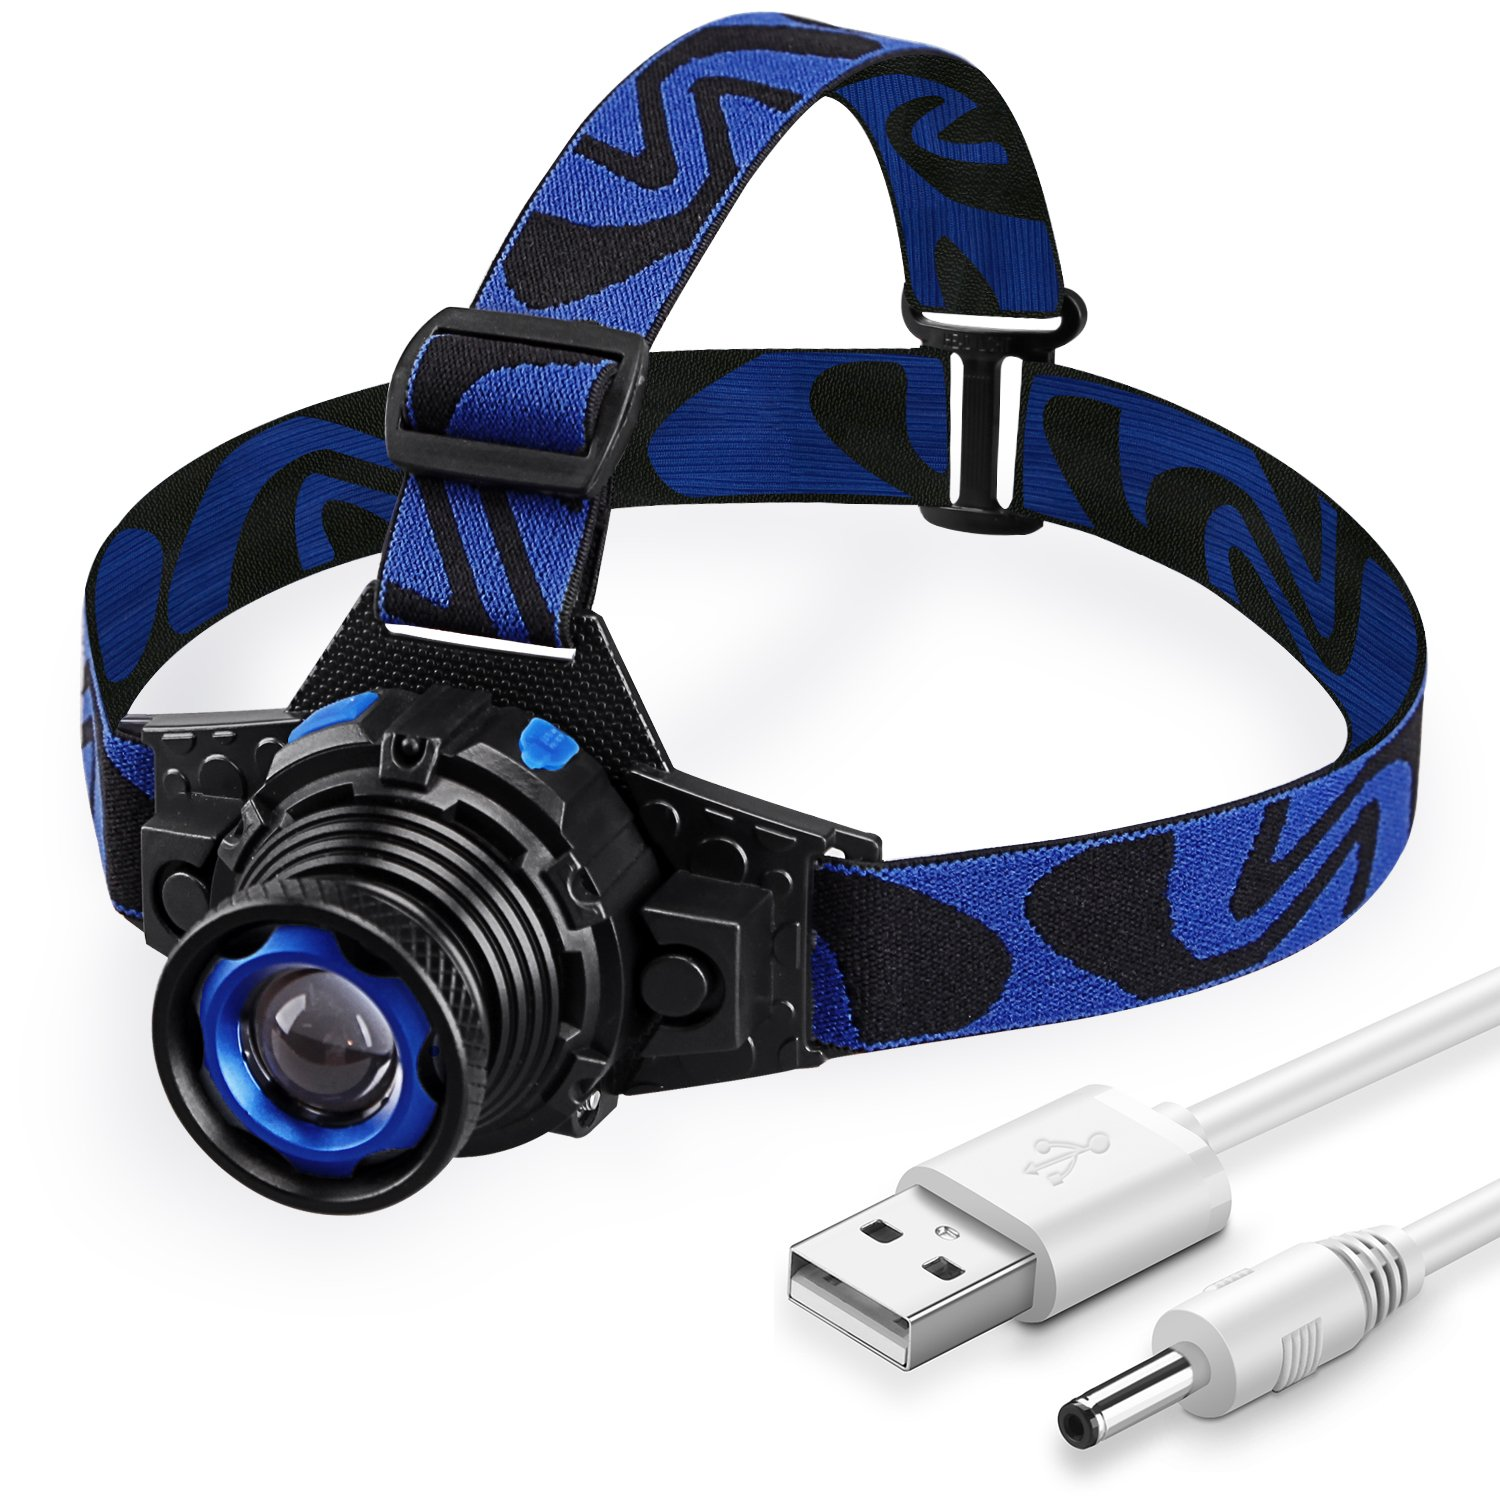 LED Headlamp Rechargeable via USB, Bright Head Light LED Zoomable 3 Modes, Adjustable and Waterproof Flashlight, Blue